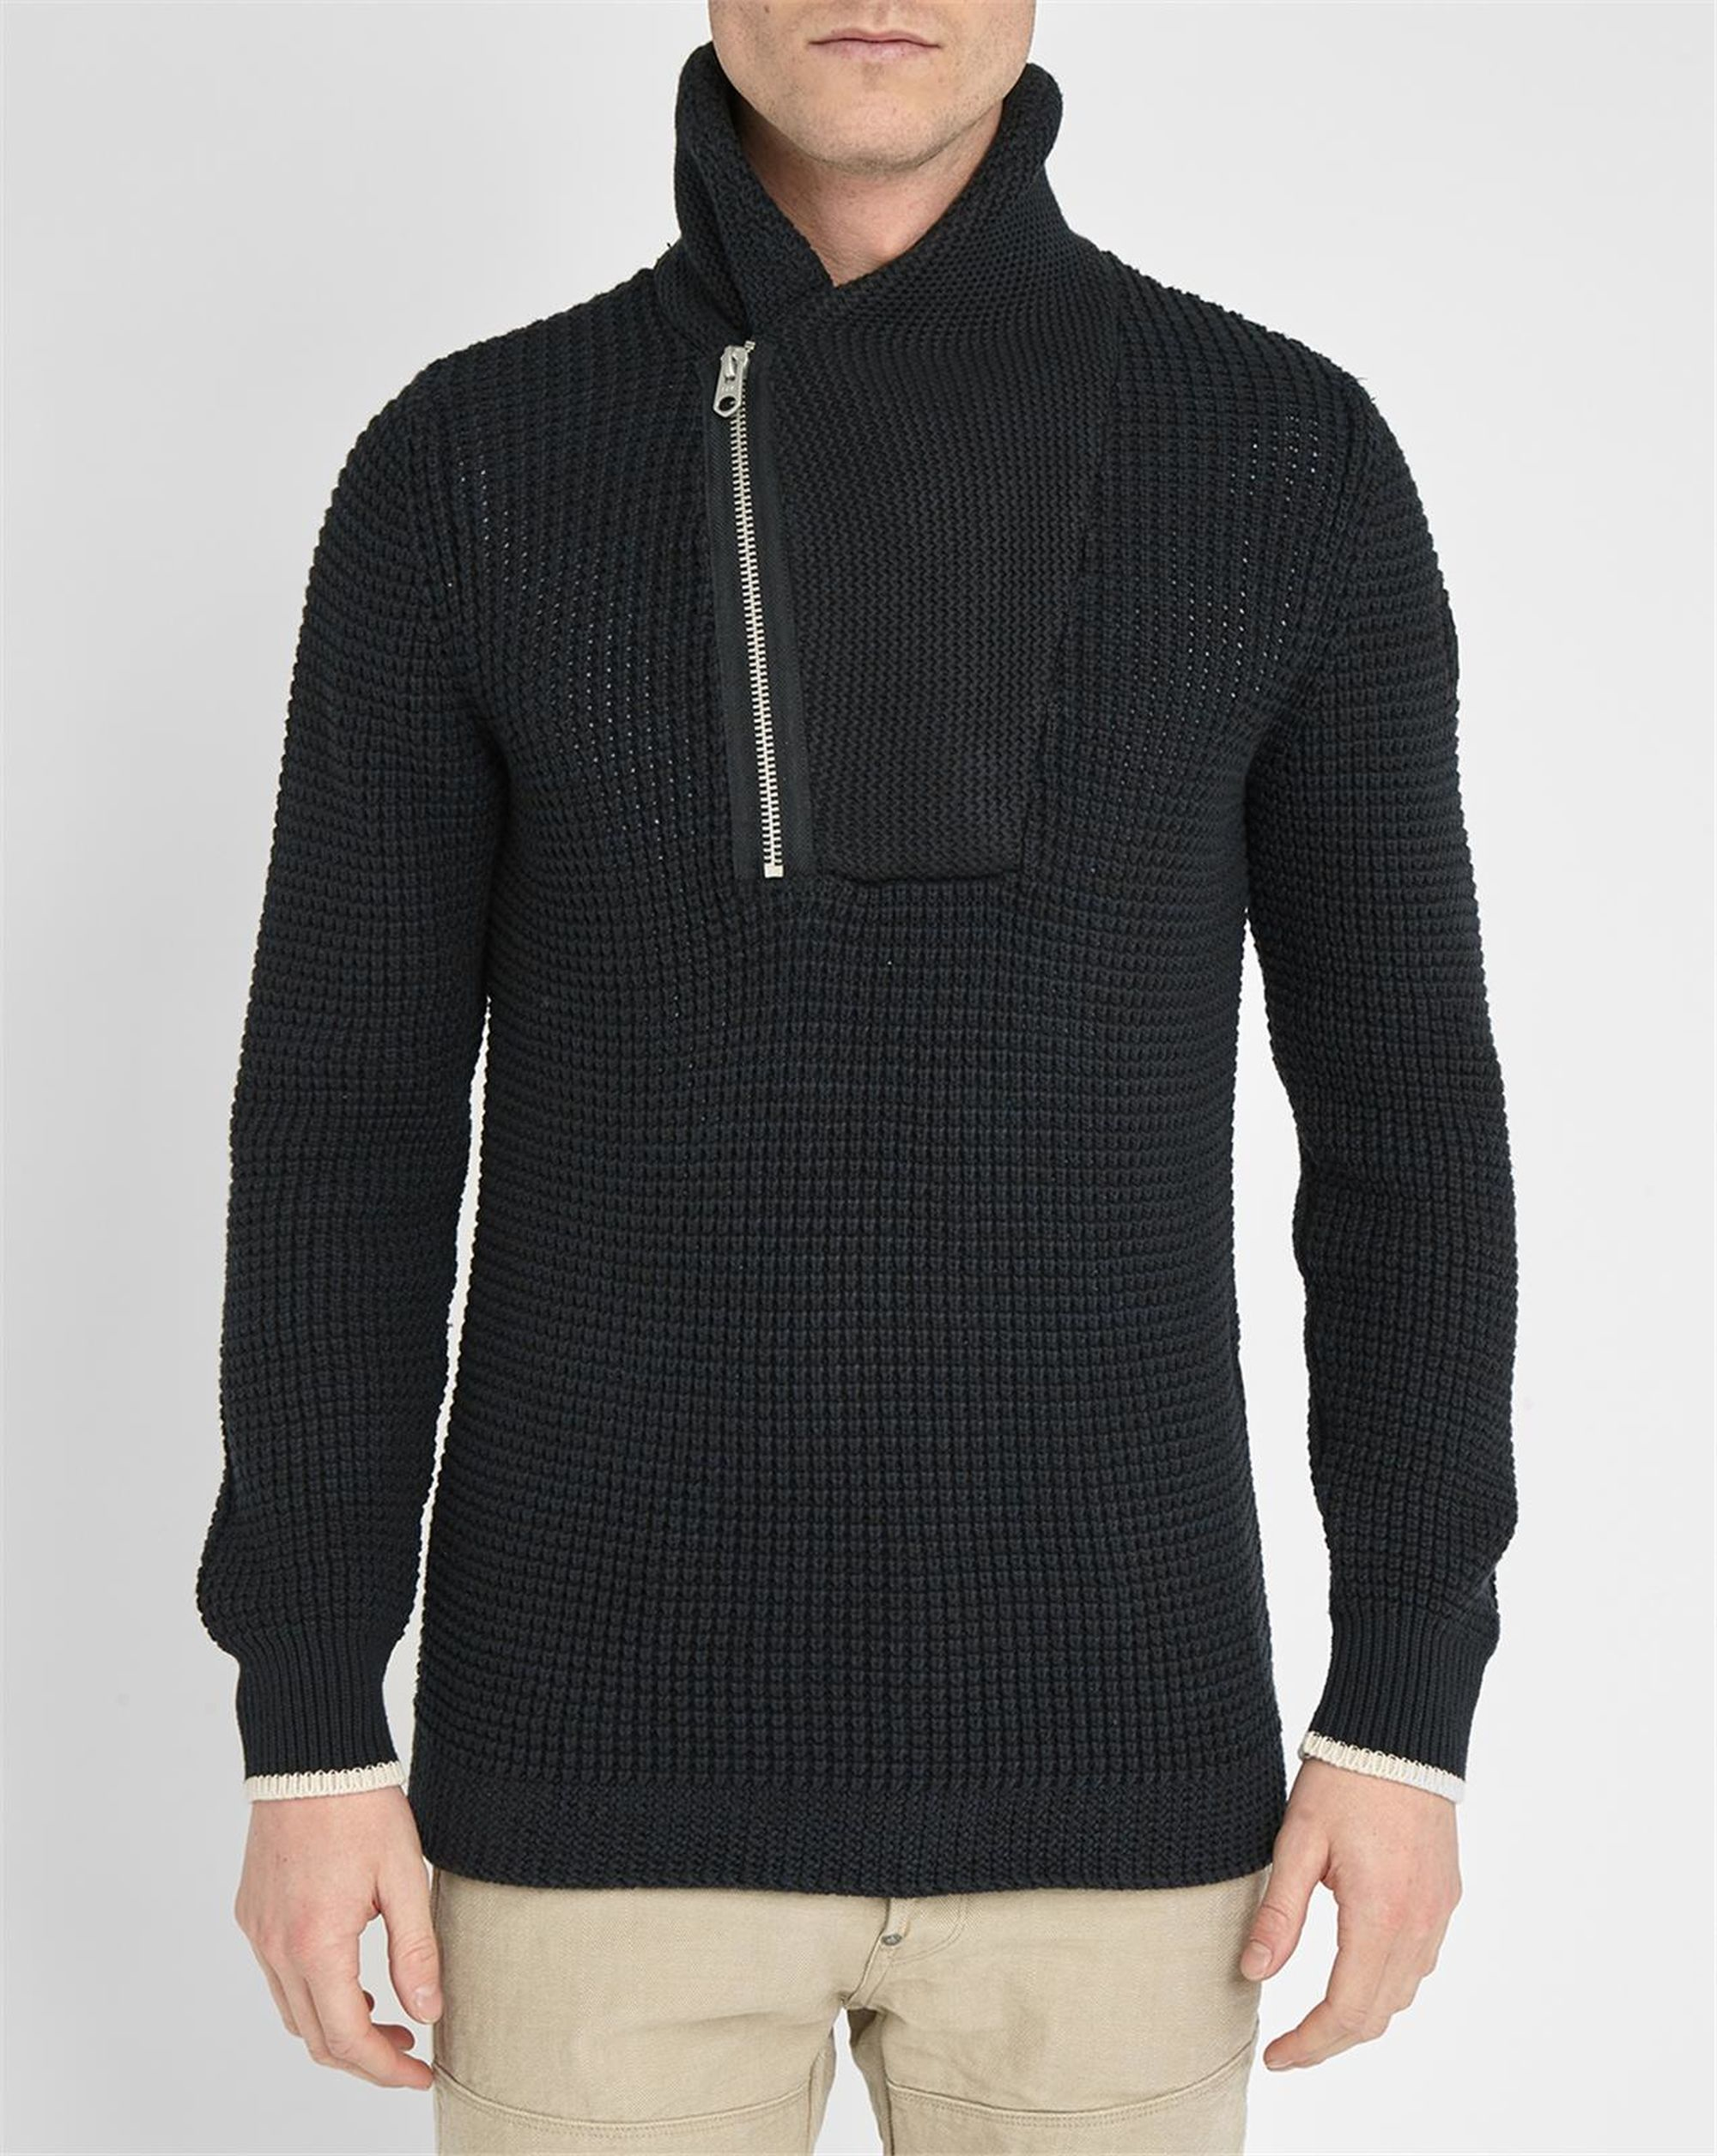 g star raw charcoal filler aero knit shawl collar sweater in gray for men lyst. Black Bedroom Furniture Sets. Home Design Ideas